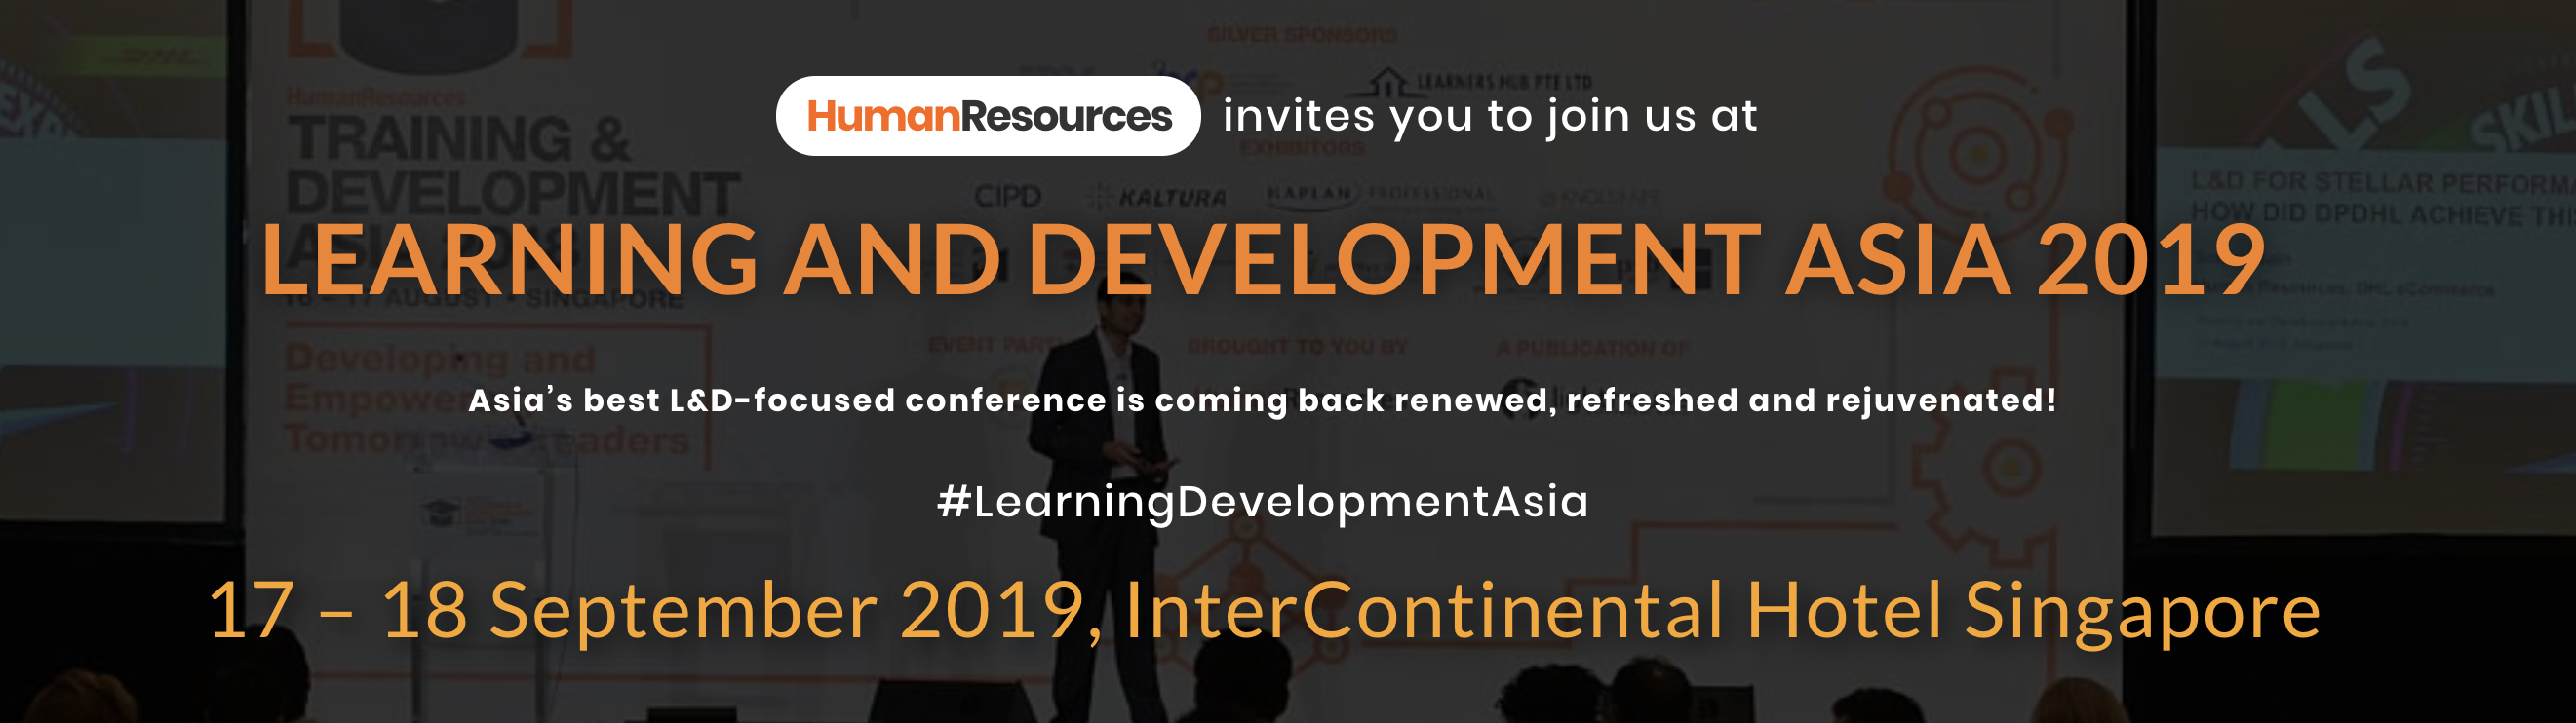 [EVENT] Learning & Development Asia 2019